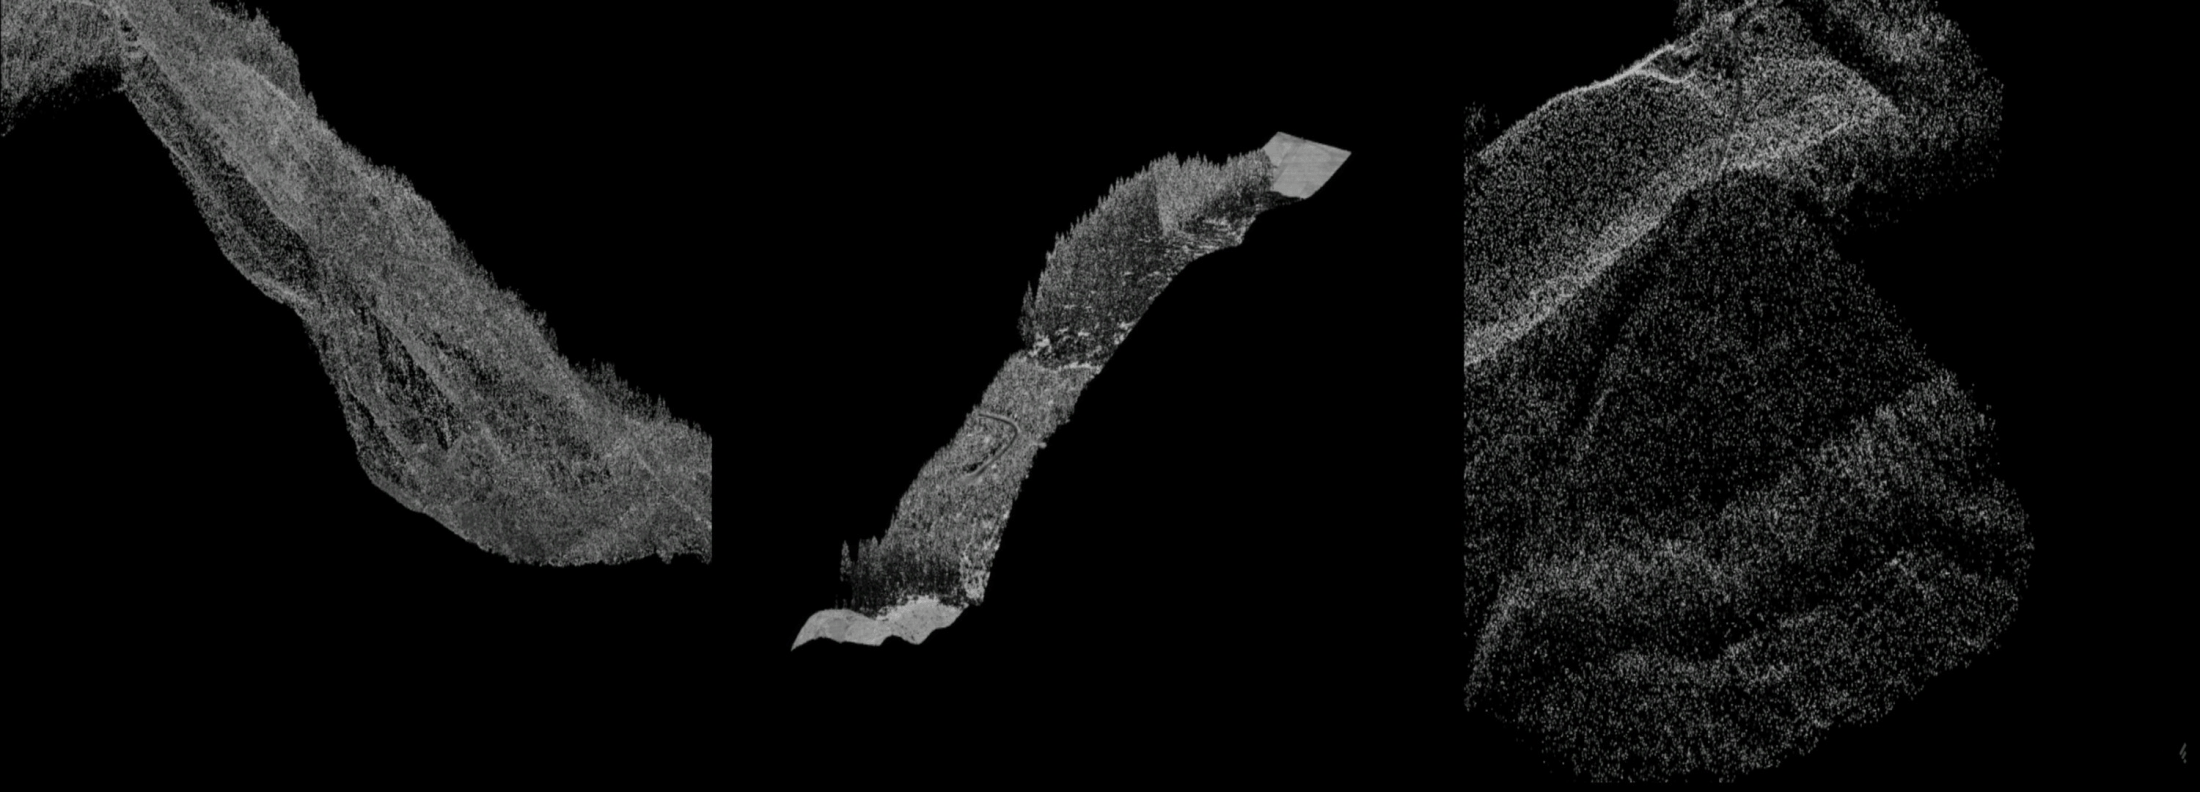 Image from Megan McKissack's projected work, depicting Oregon LIDAR point cloud data